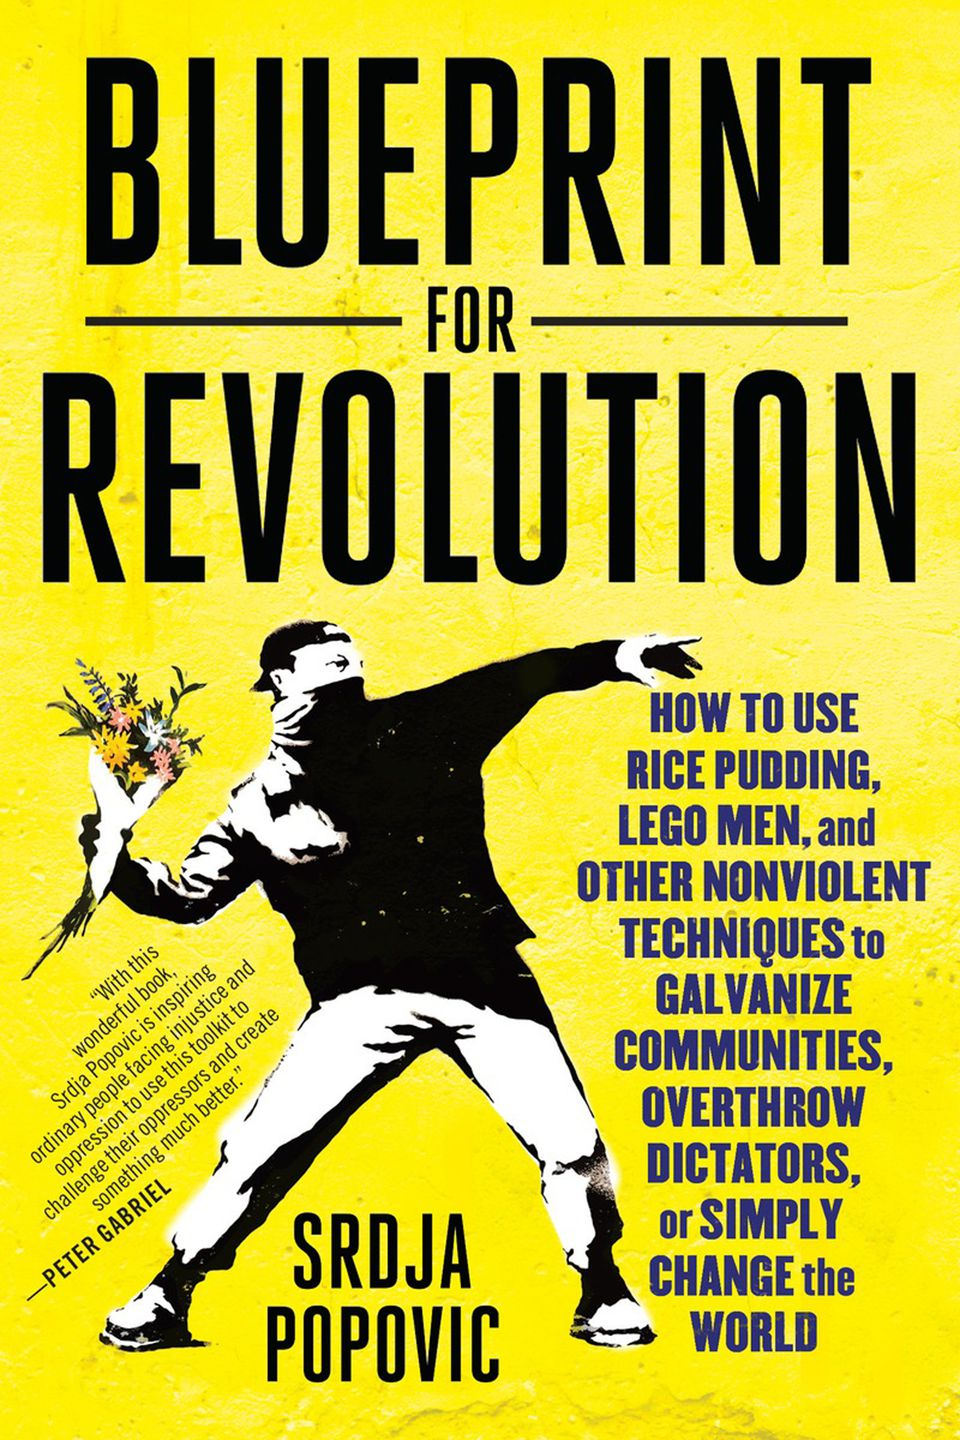 """Blueprint for Revolution"" by Srdja Popovic"